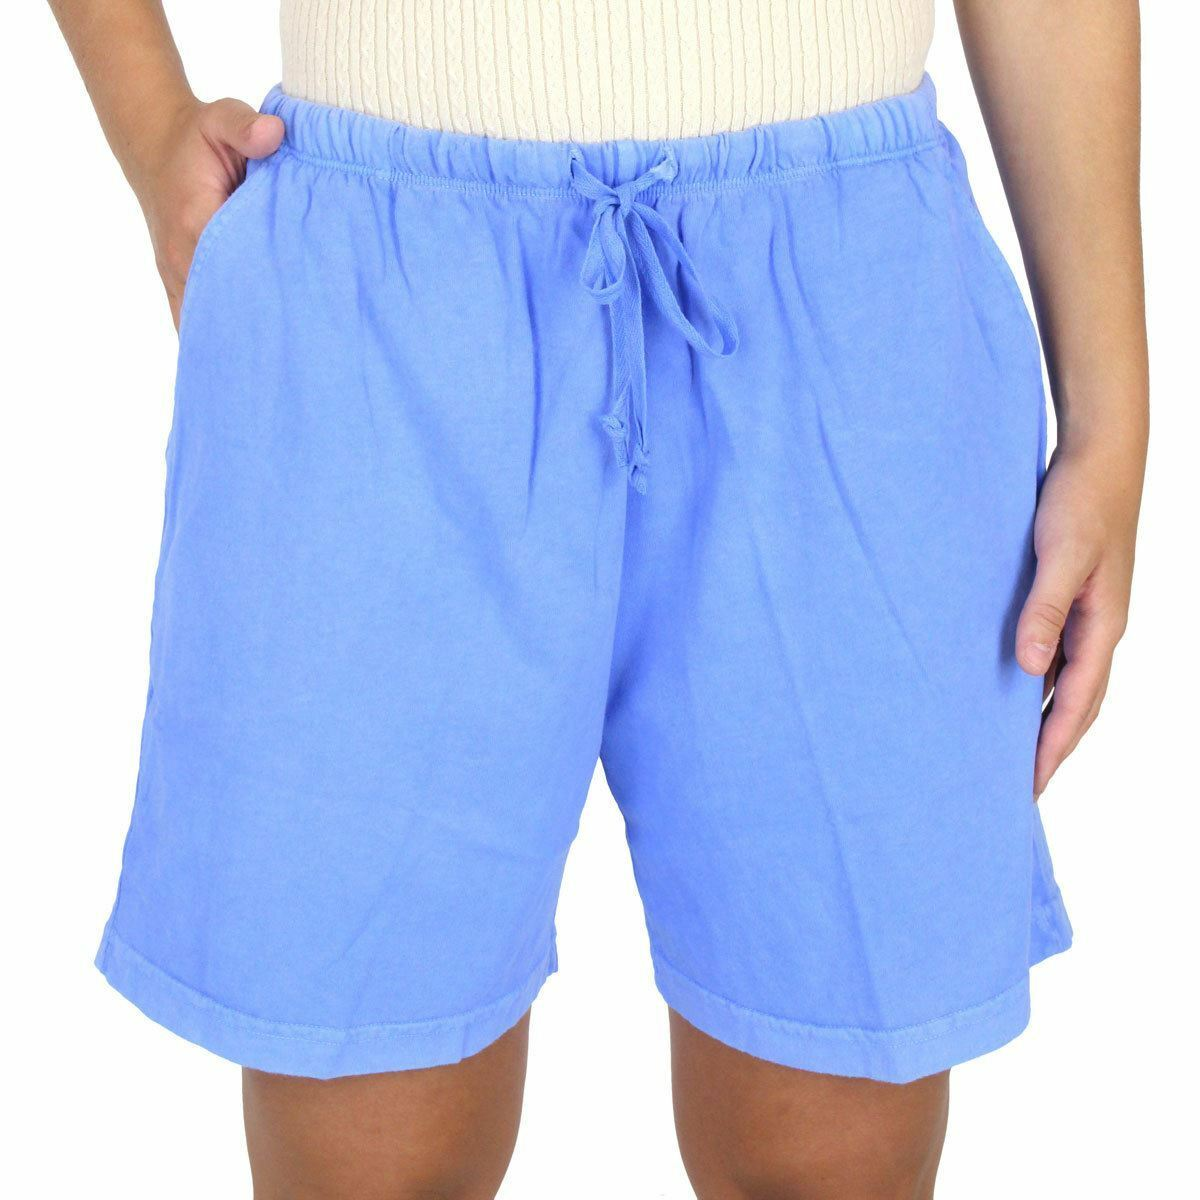 Womens 100% Cotton Jersey Summer Shorts - 100% Cotton - Made in USA